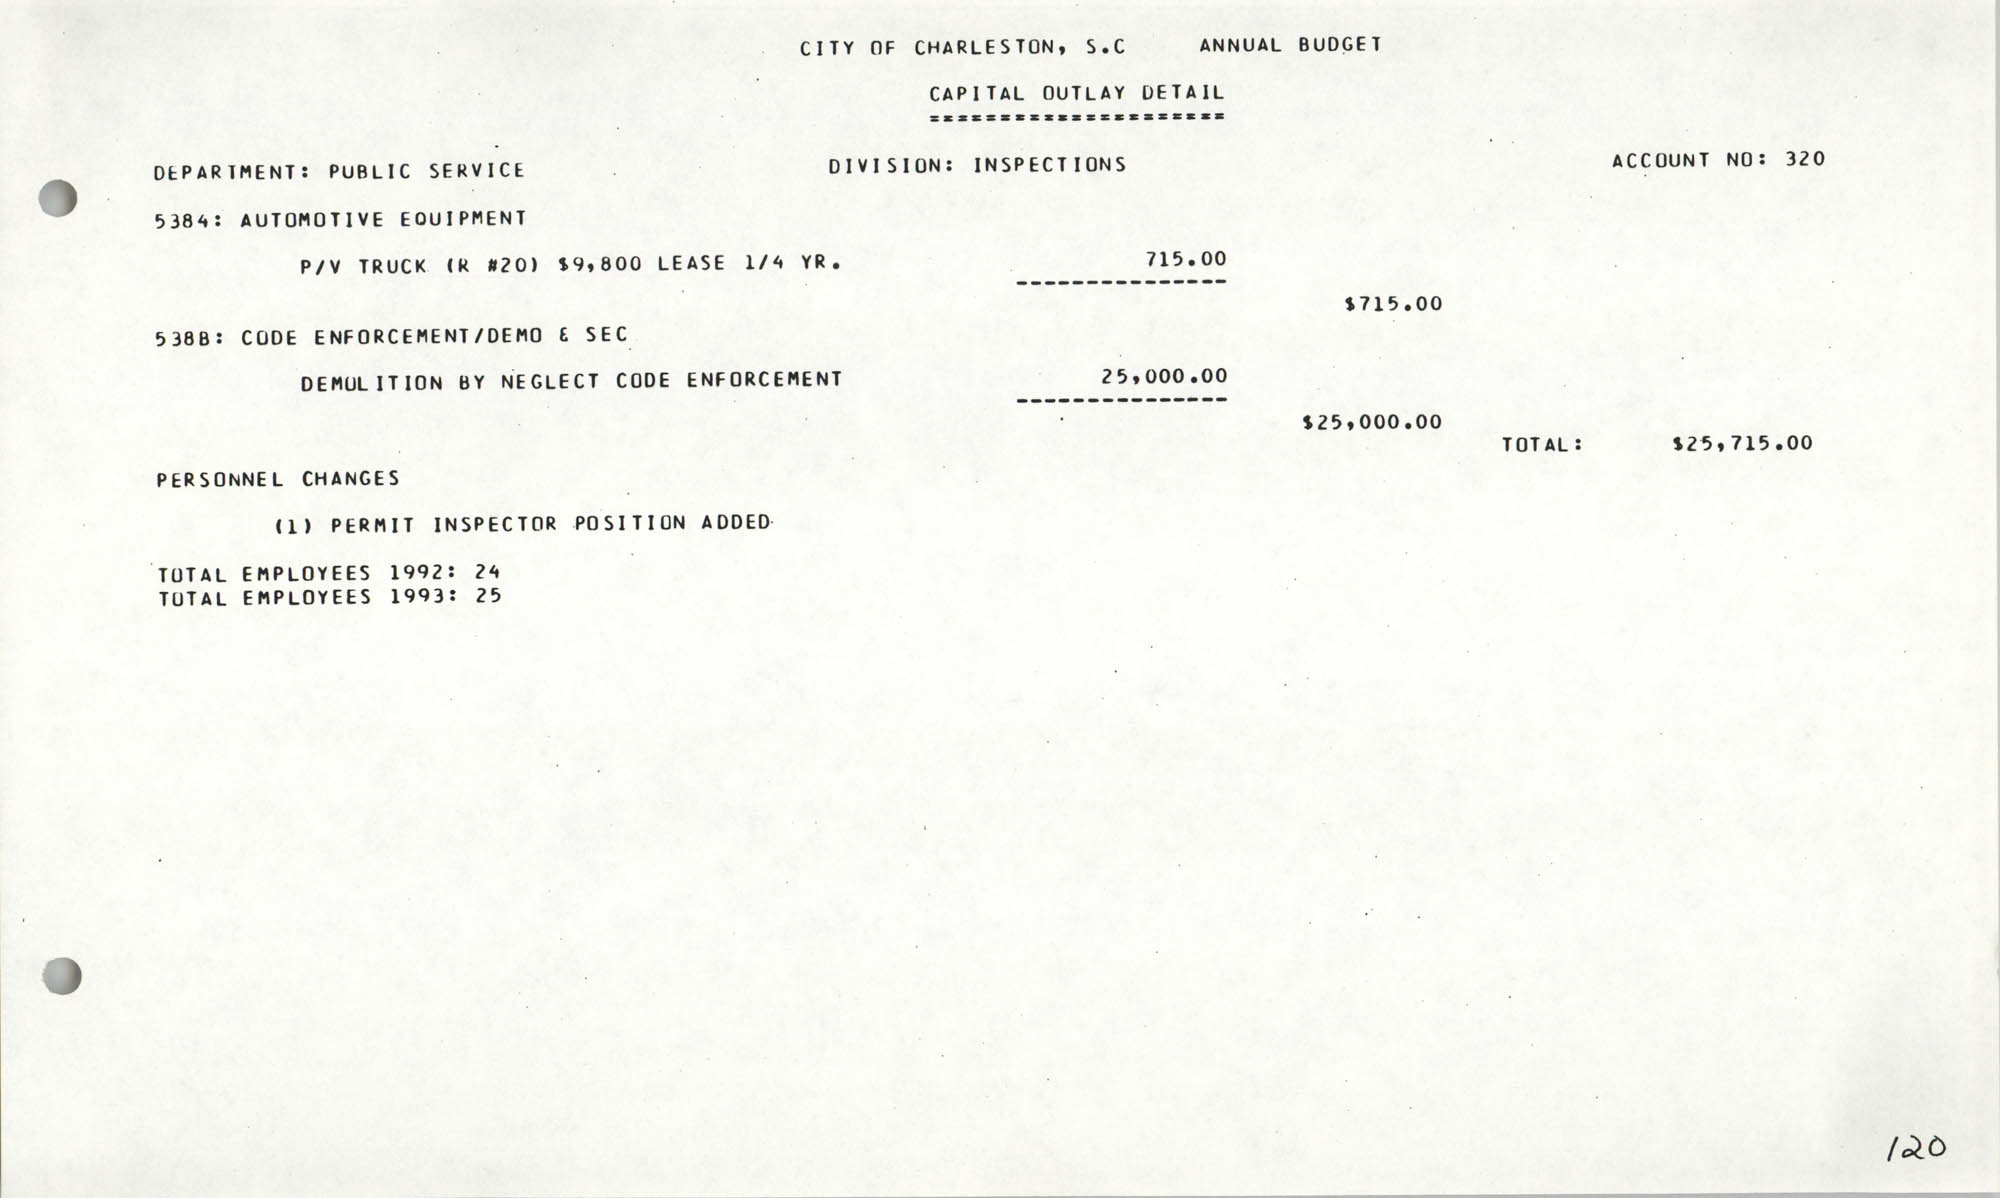 The City Council of Charleston, South Carolina, 1993 Budget, Page 120